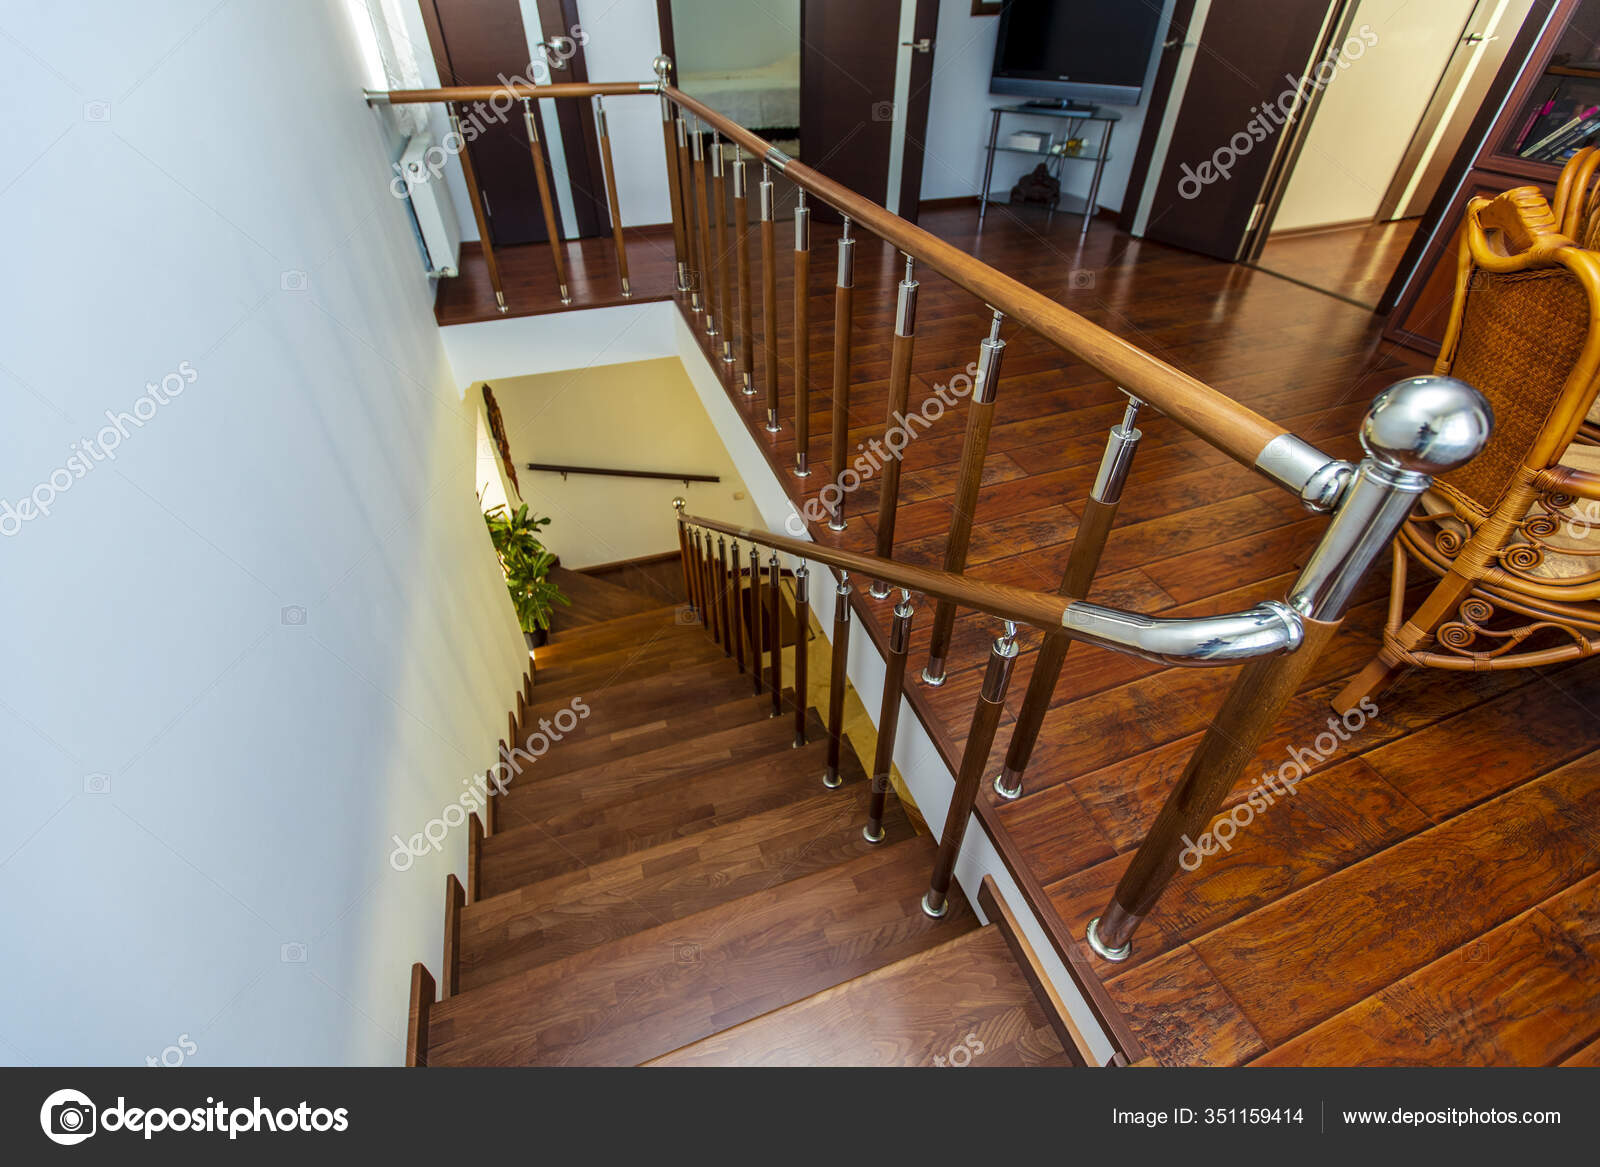 A Beautiful Wooden Staircase Of Dark Wood Leading From The Second Floor To The First Chrome Shiny Railing Stock Photo C Ant Ref Mail Ru 351159414